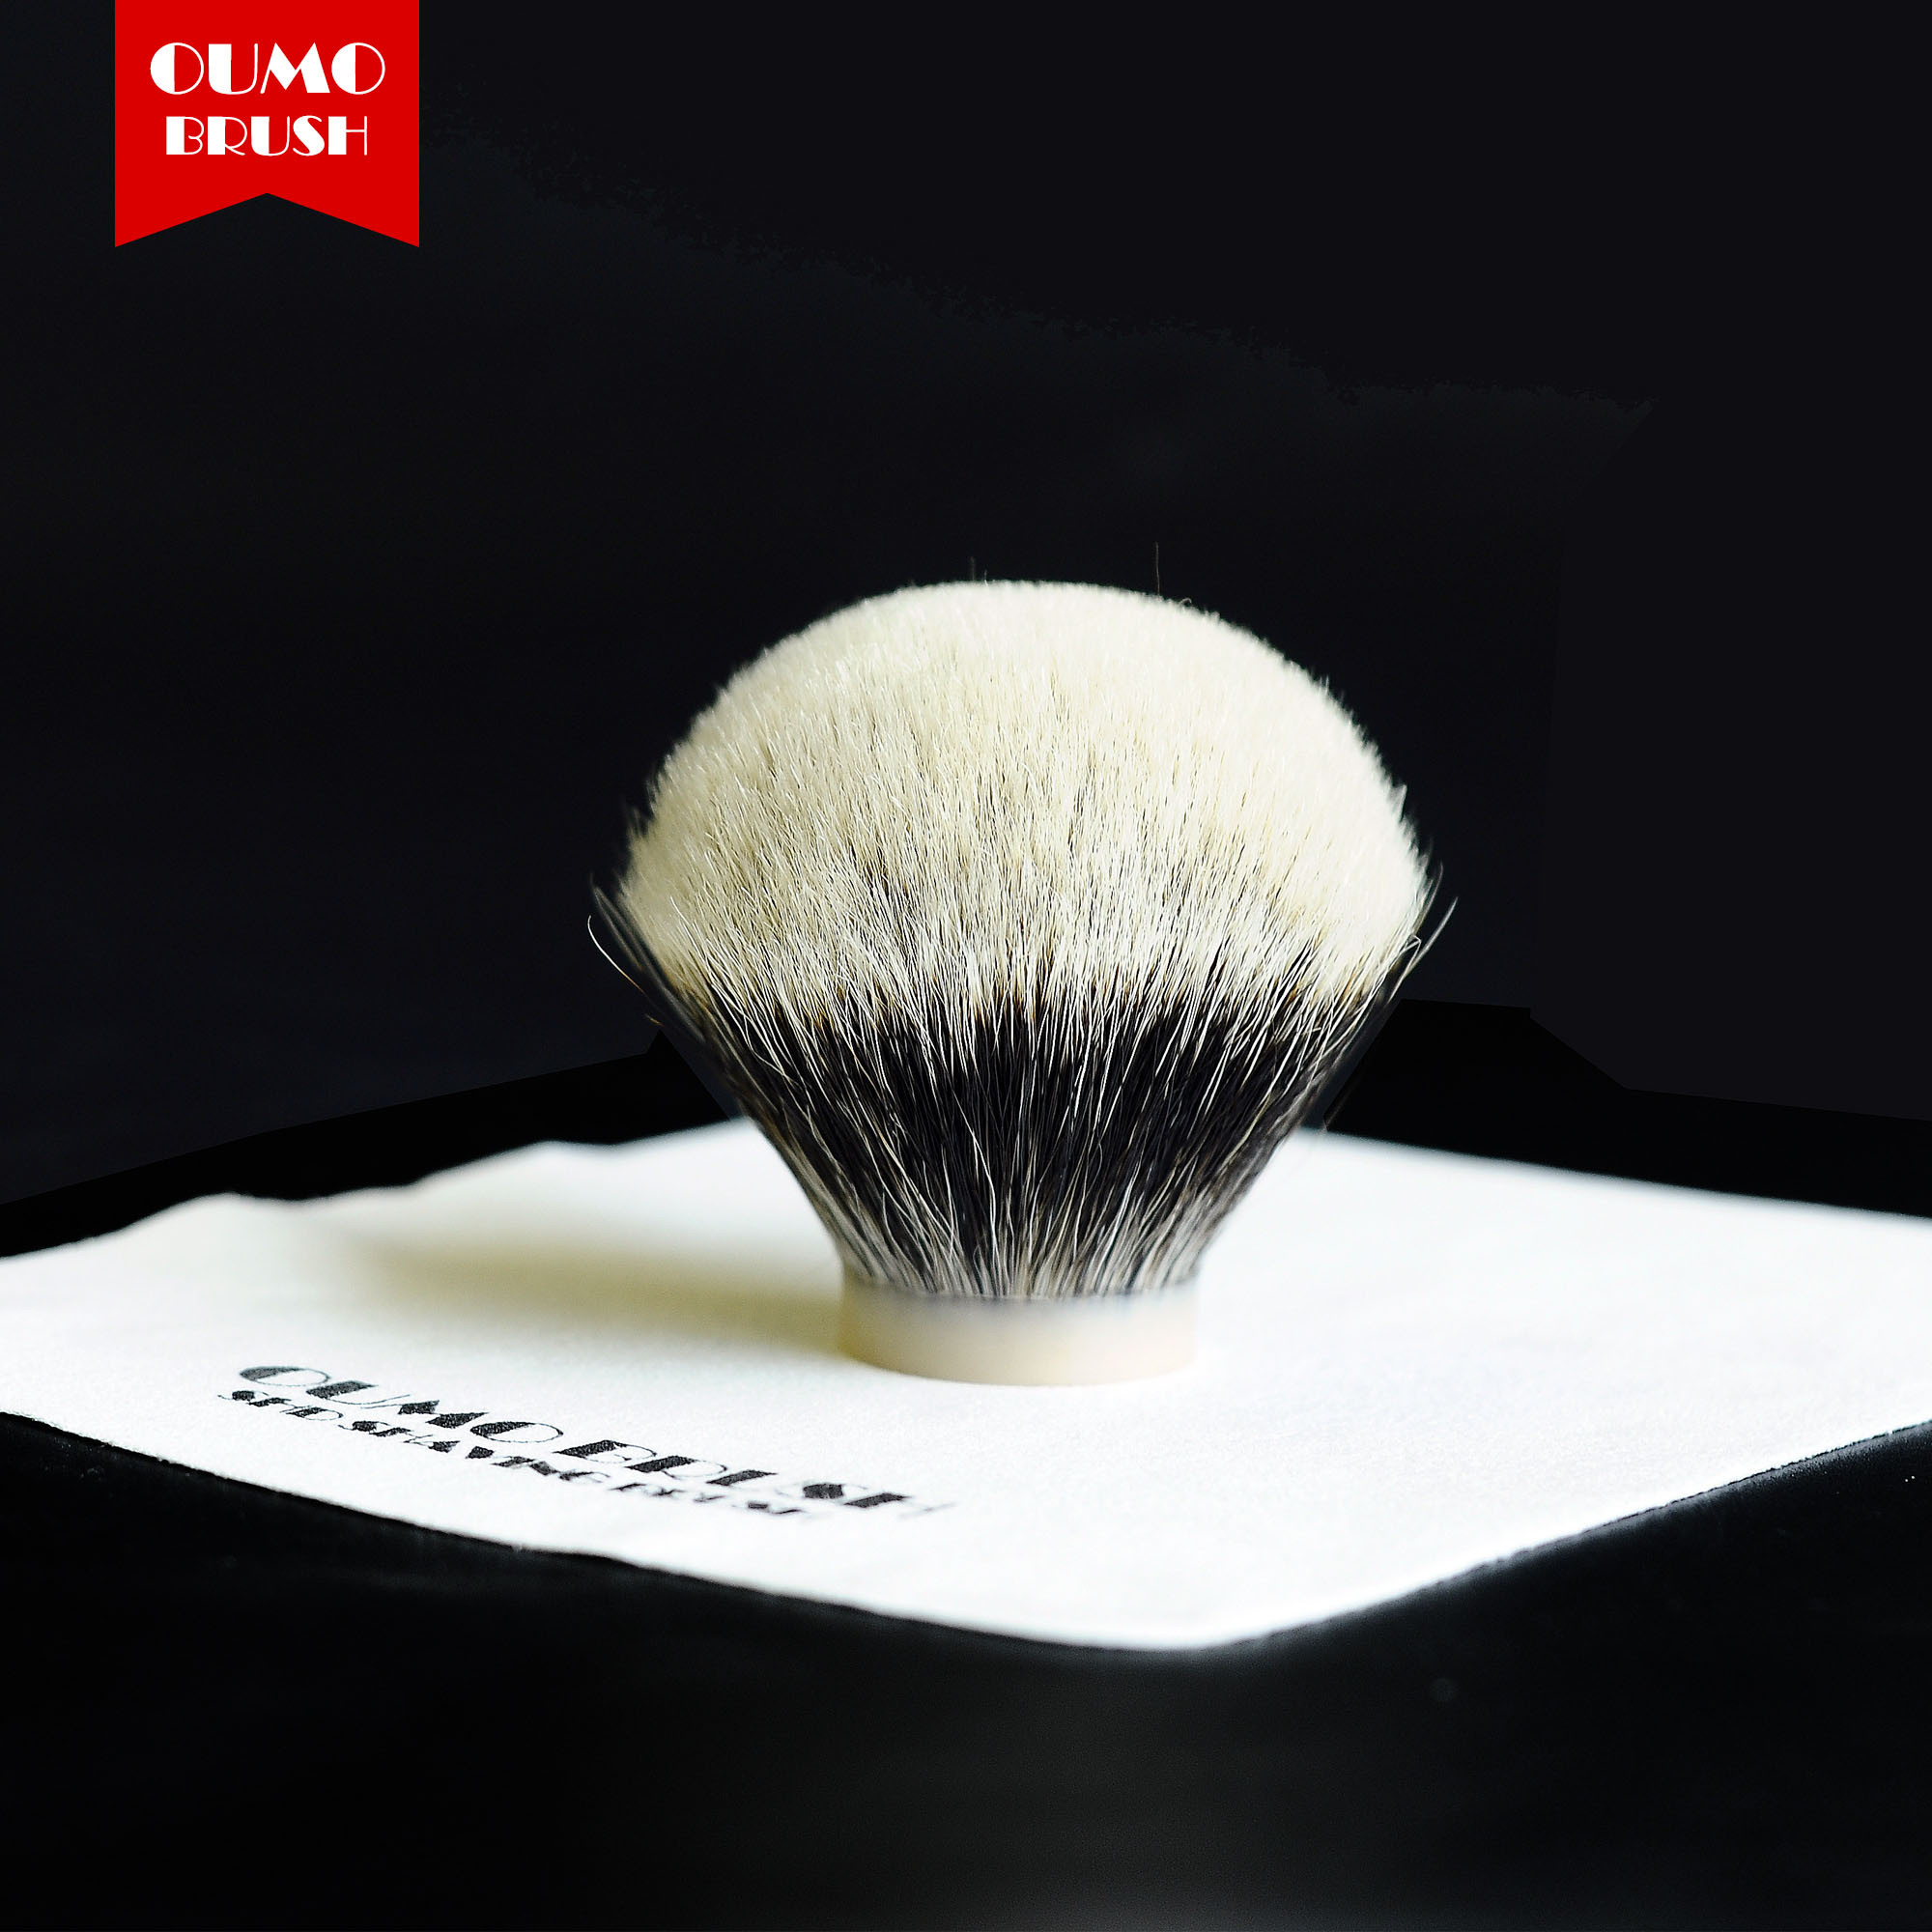 OUMO BRUSH-  SHD Chubby Bulb Manchuria Finest Two Band Badger Hair Knots Shaving Brush Knots